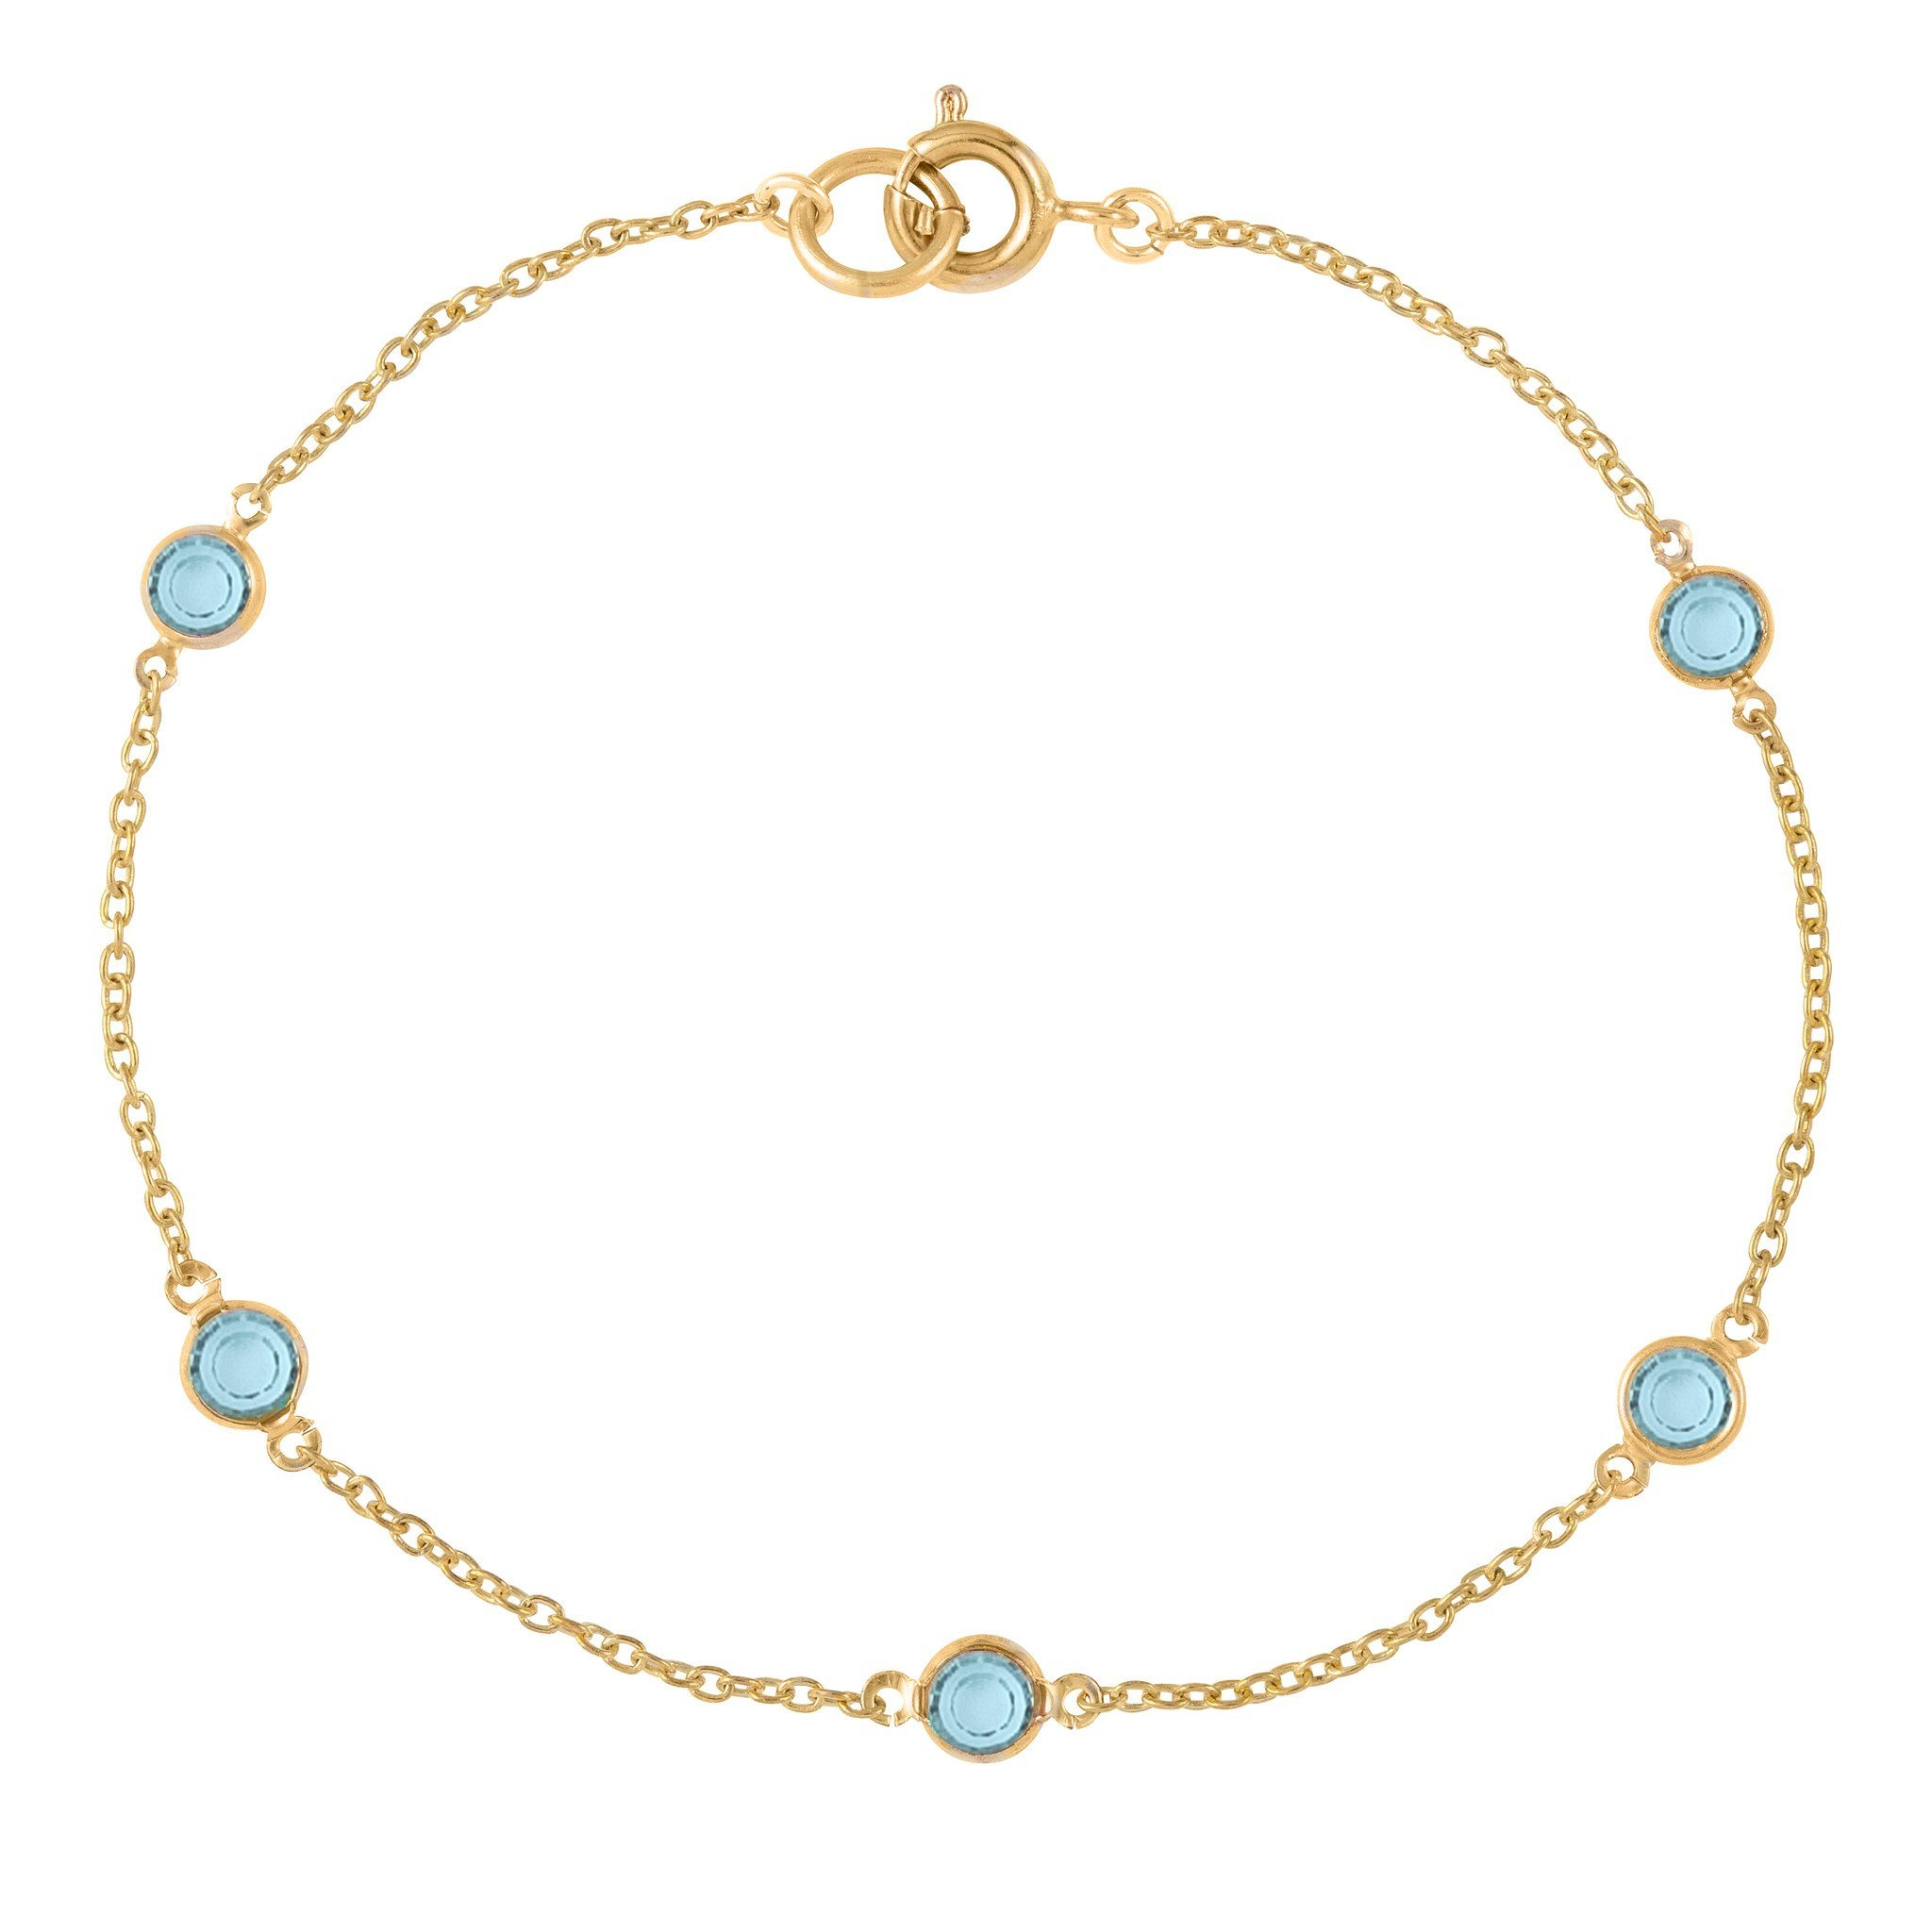 SUSAN CAPLAN CONTEMPORARY 18CT GOLD PLATED SWAROVSKI CRYSTAL BRACELET